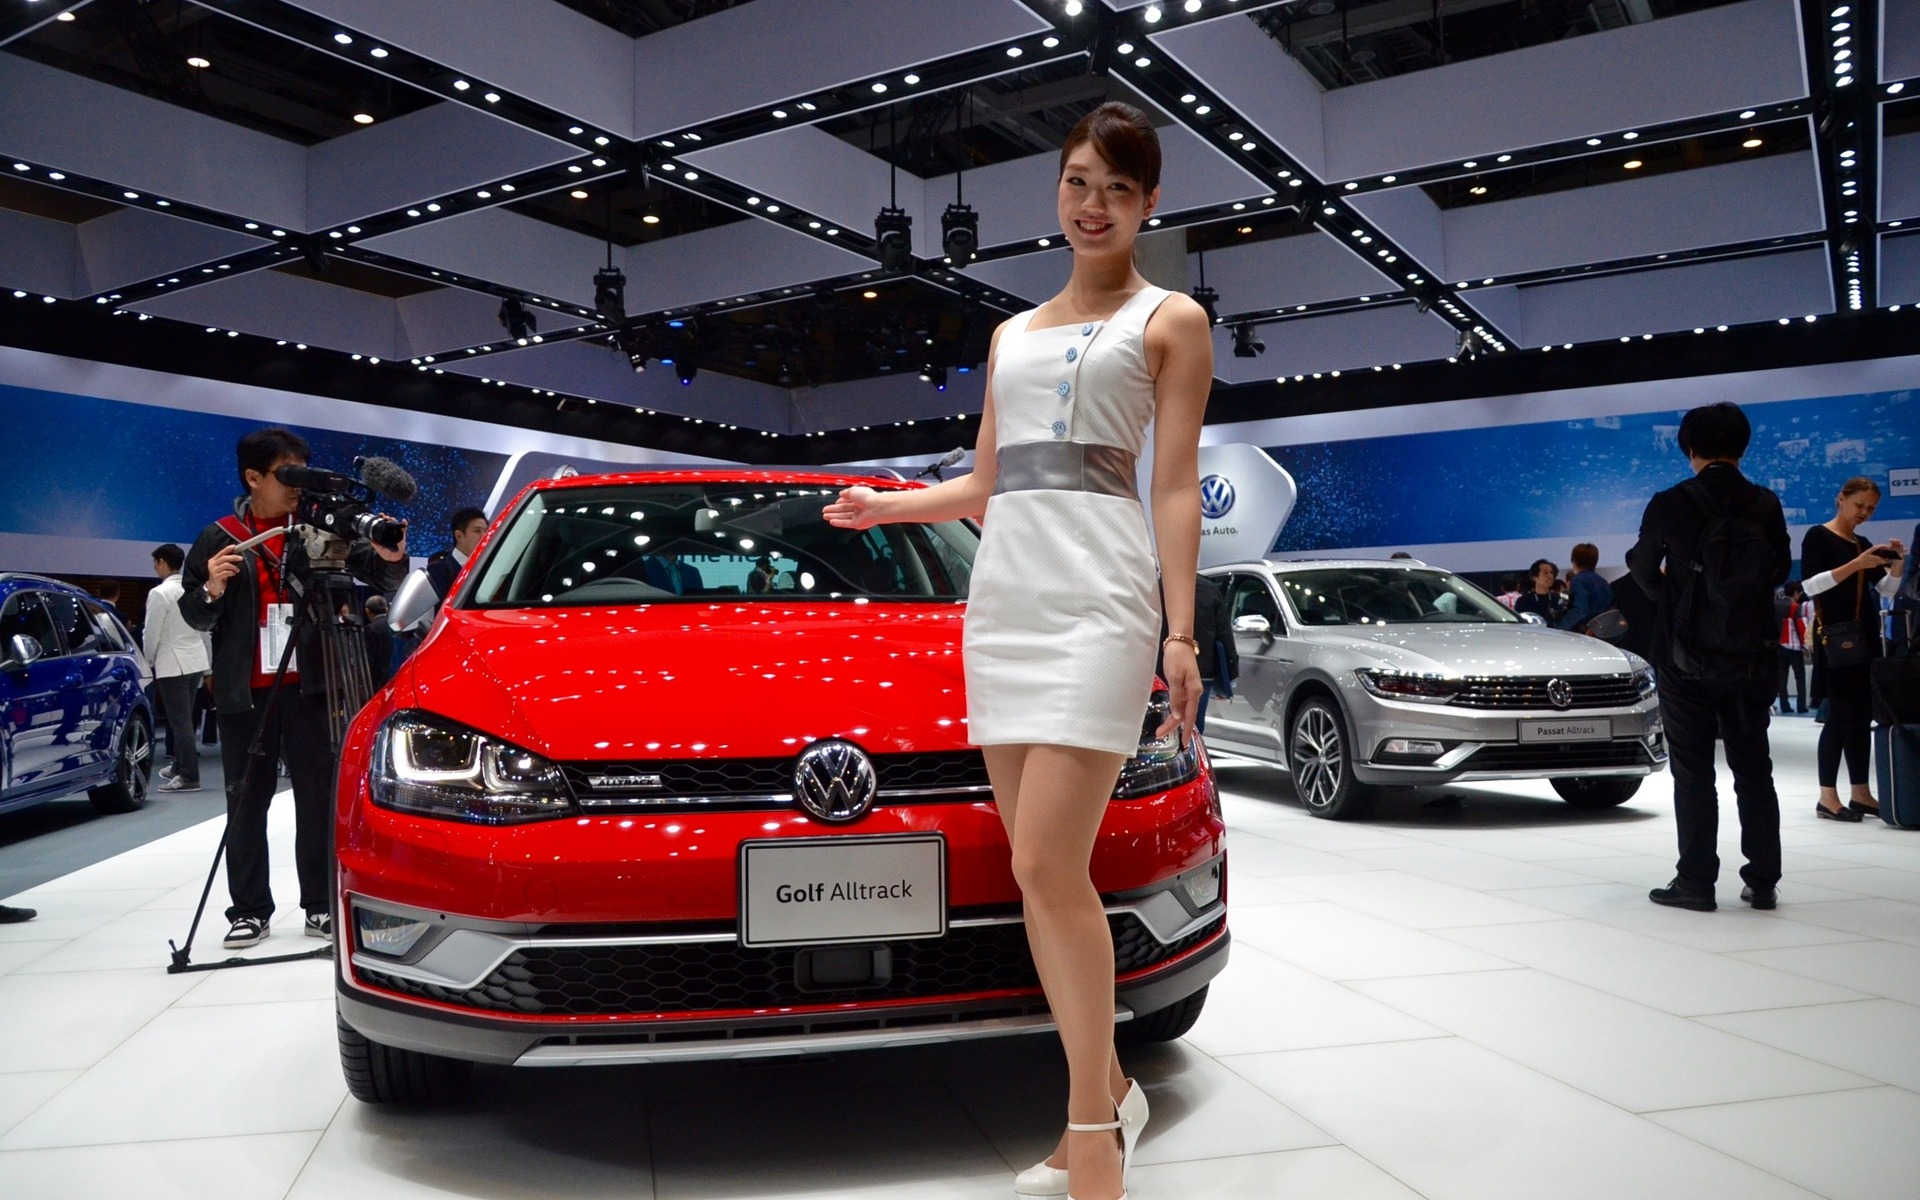 Volkswagen At The Tokyo Motor Show The Car Guide - Volkswagen car show